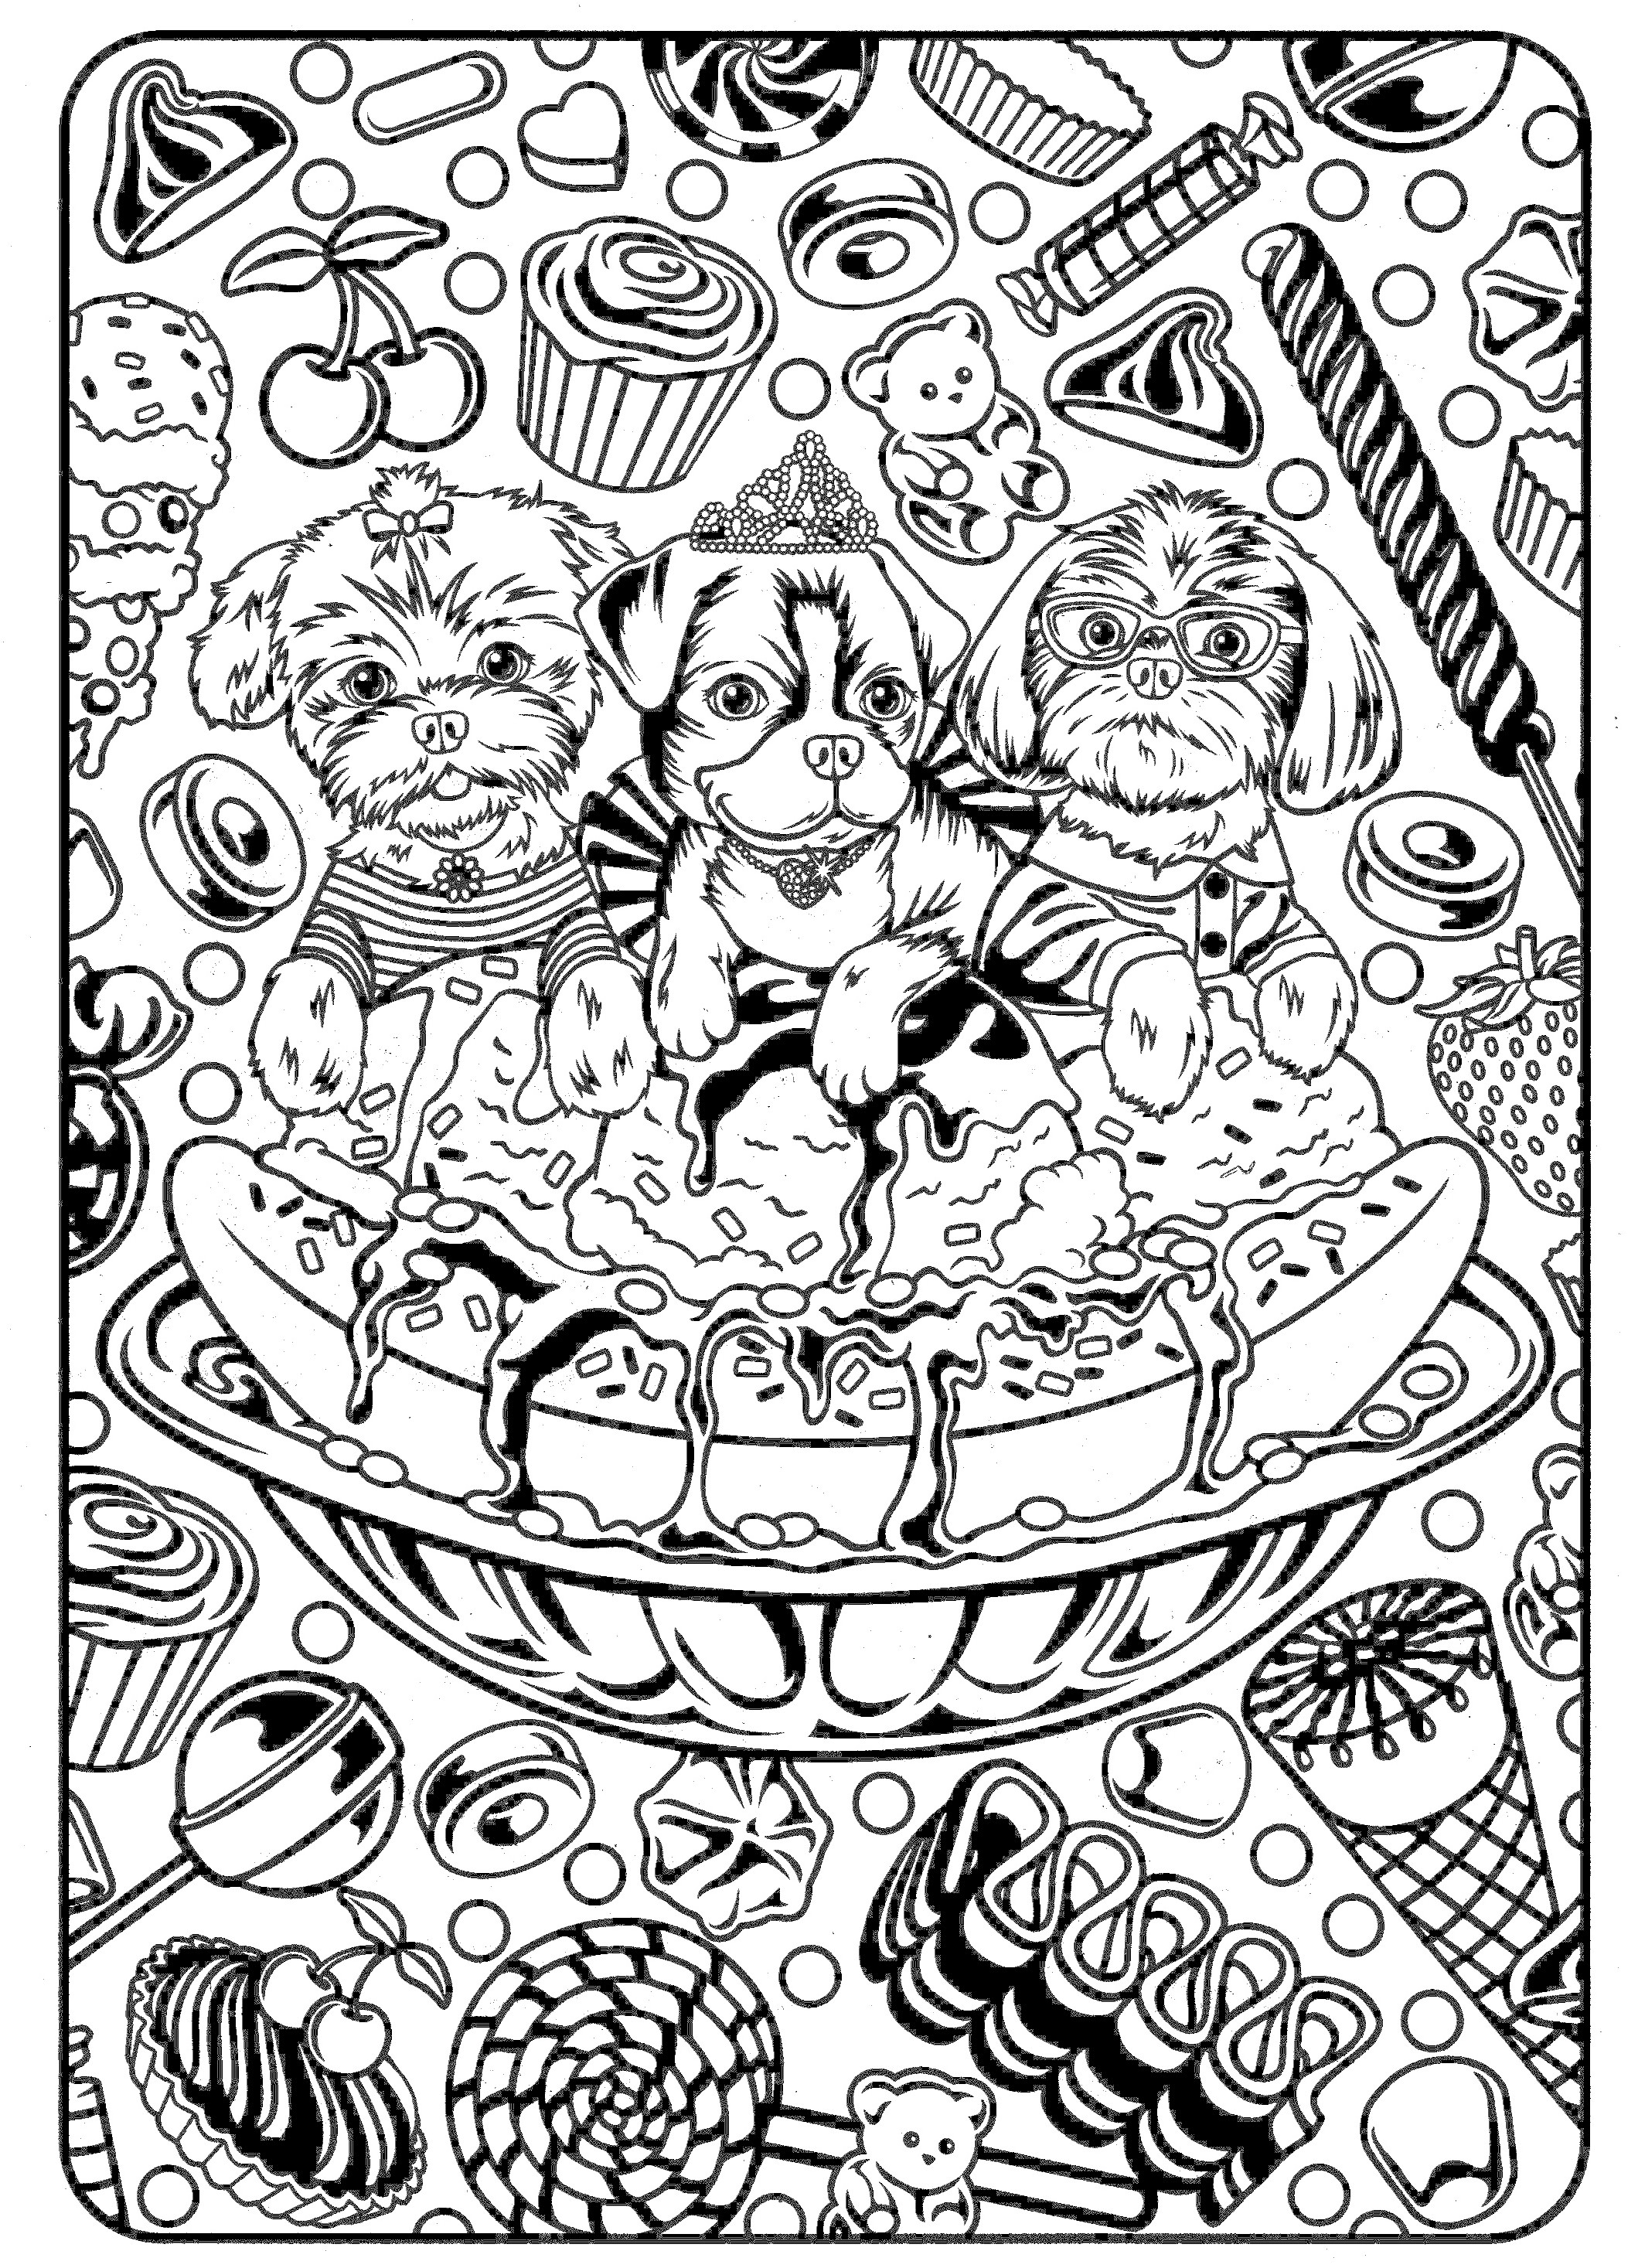 coloring page for kids free printable tangled coloring pages for kids cool2bkids for page kids coloring